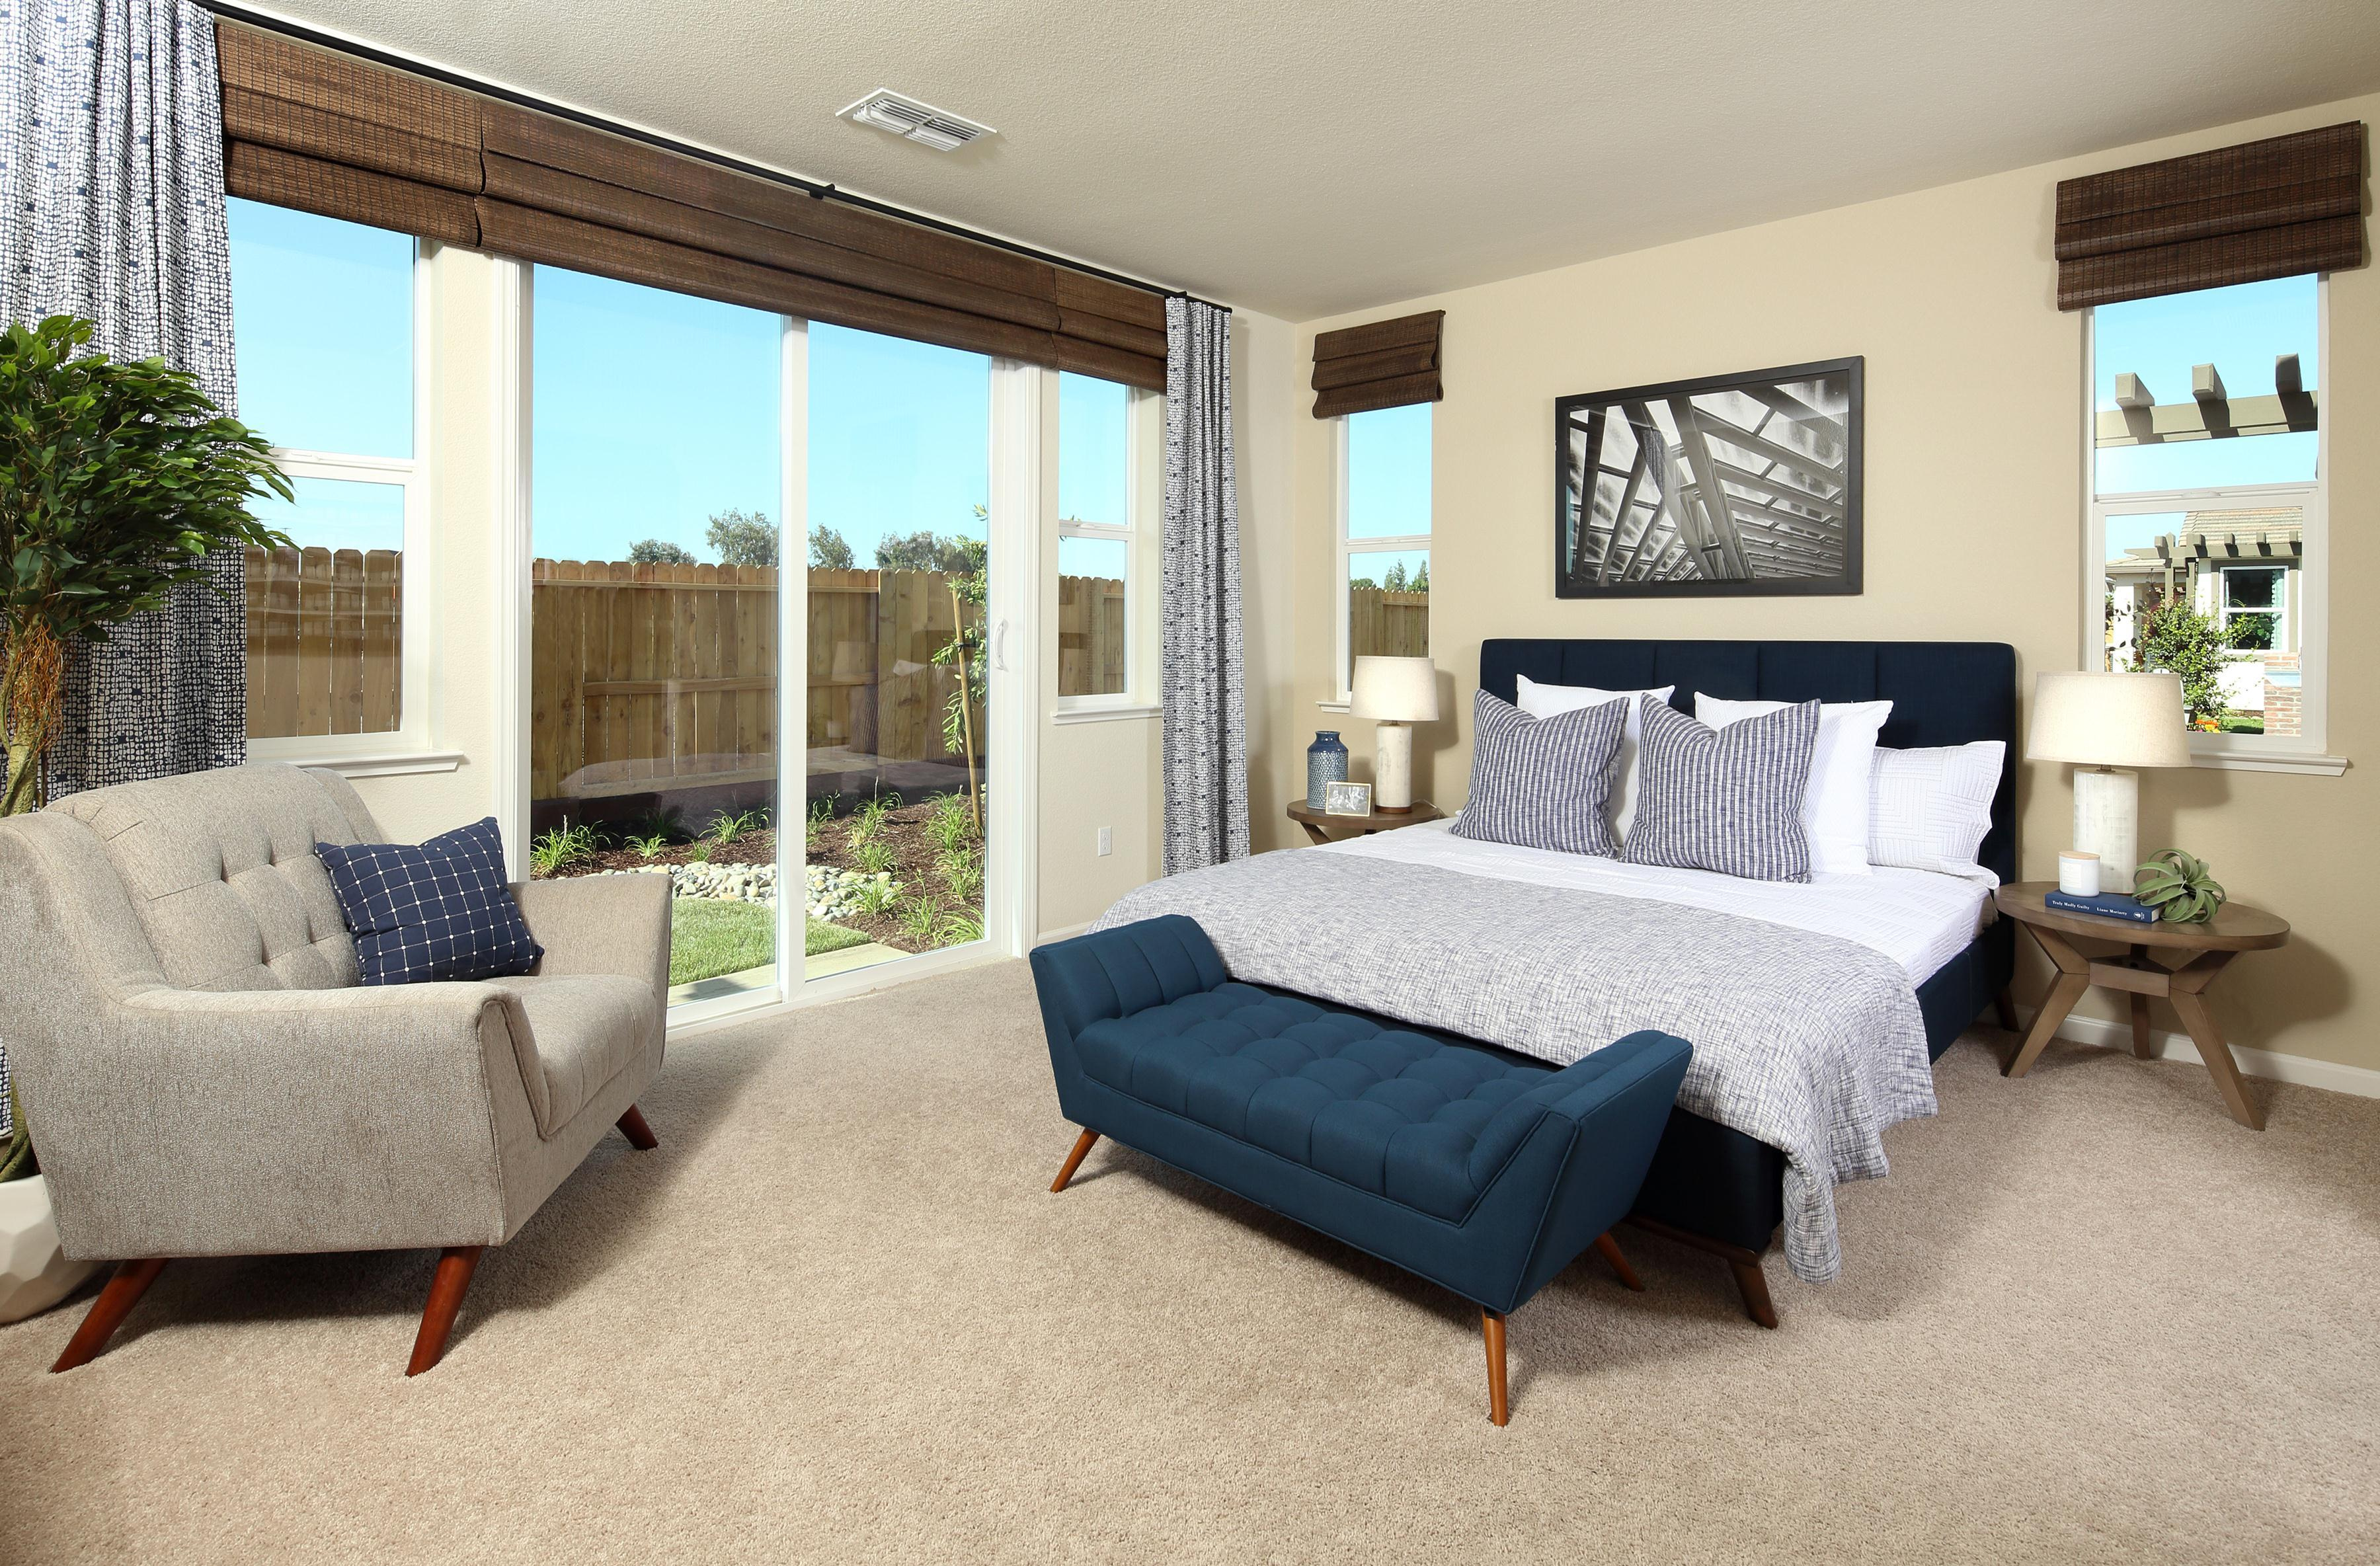 Bedroom featured in THE GRAND MASTERPIECE By Florsheim Homes in Modesto, CA